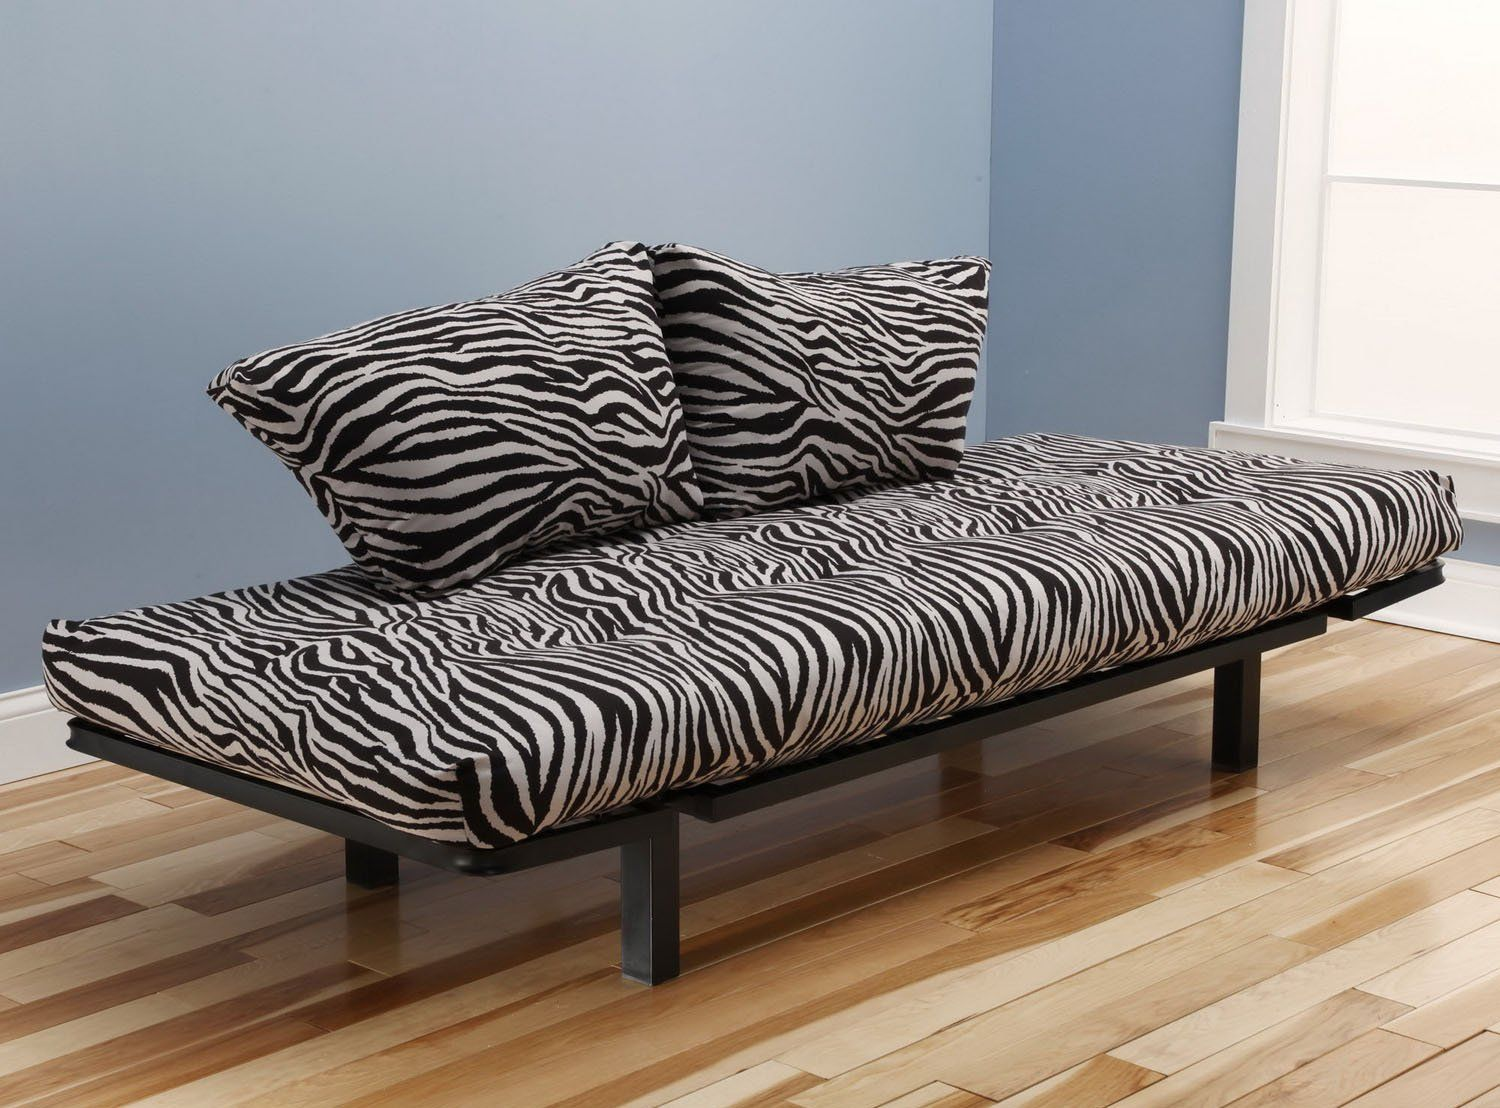 Capri Futon Lounger Zebra Zen Print Mattress See This Great Product Is An Affiliate Link